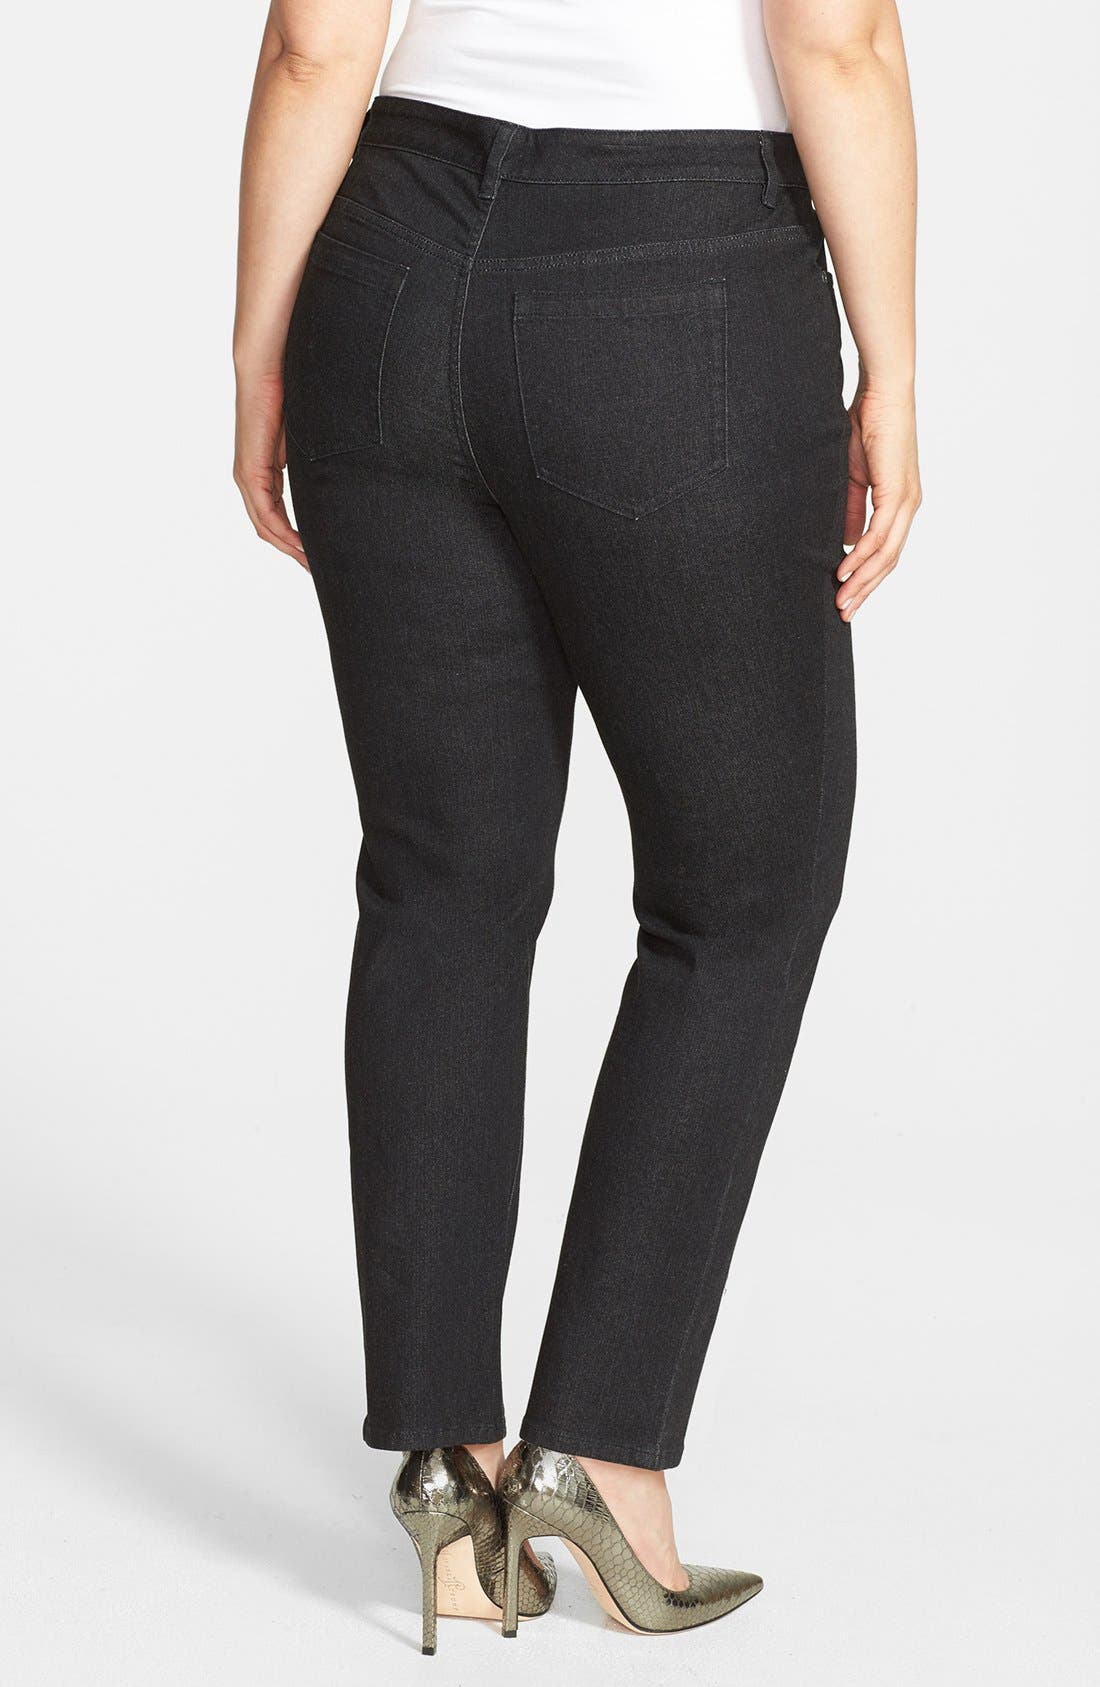 Alternate Image 2  - Two by Vince Camuto Skinny Jeans (Black Denim) (Plus Size)